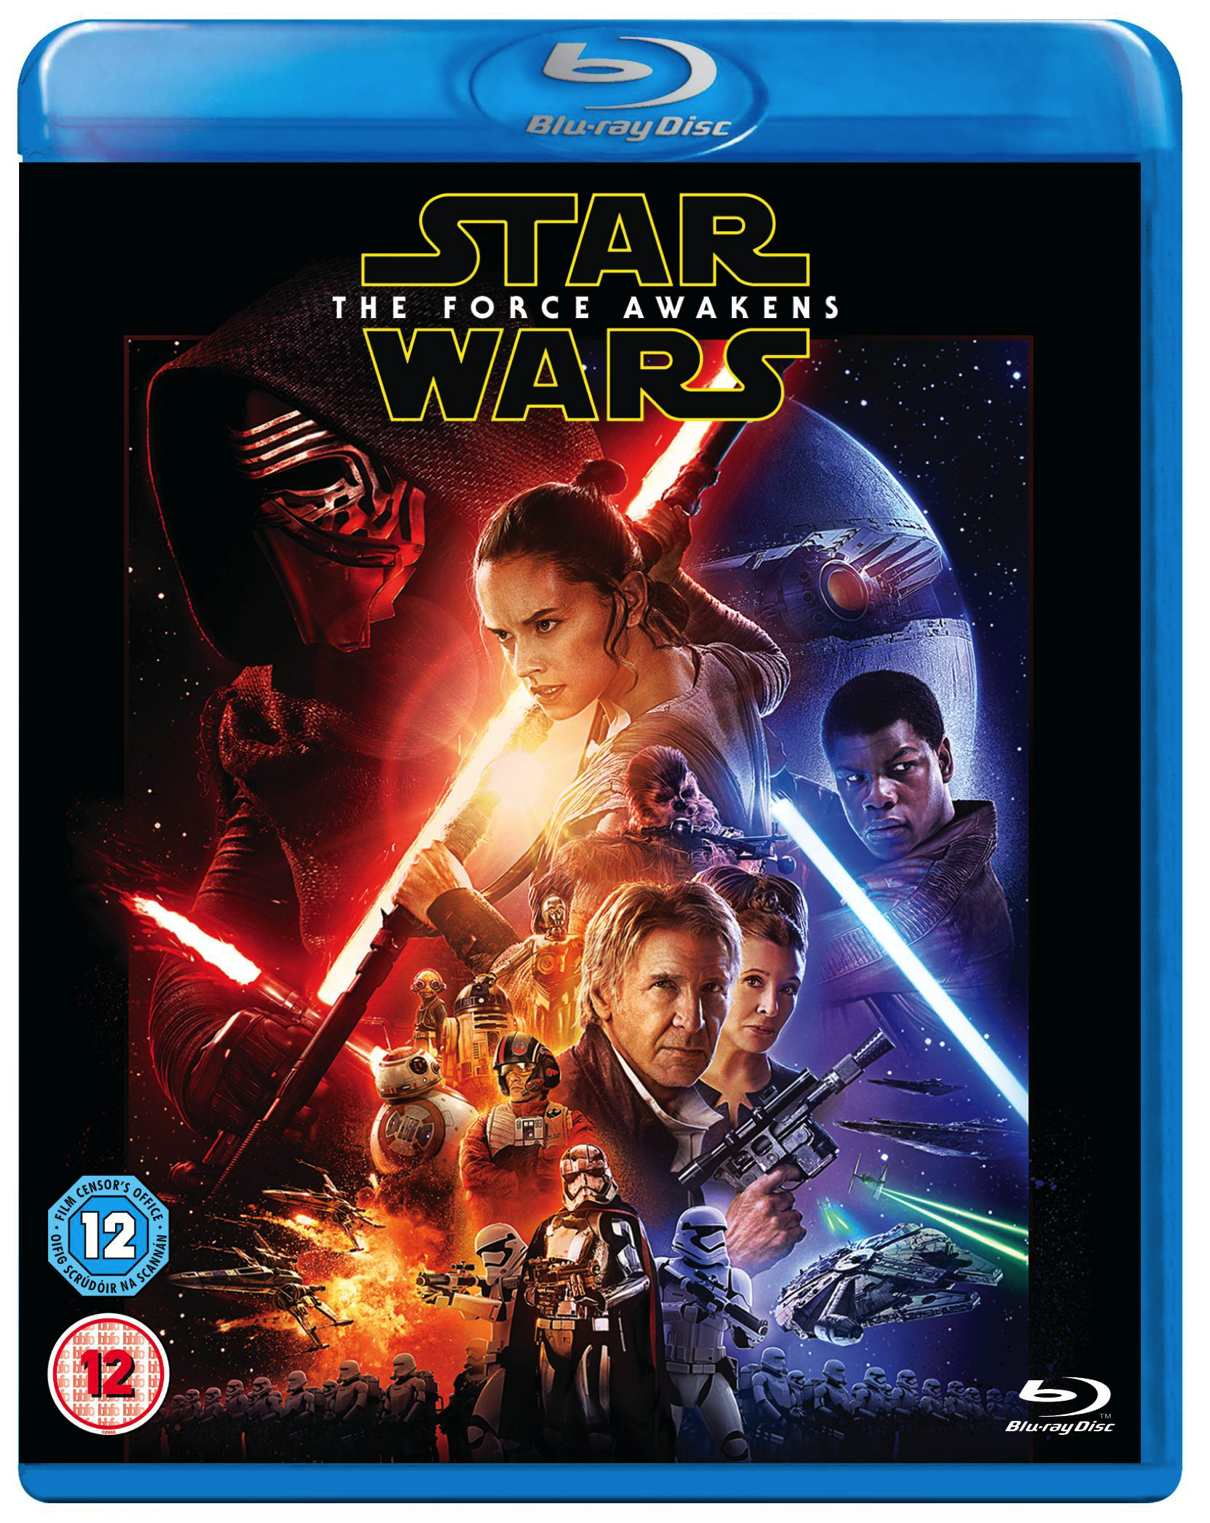 COMING TO UK BLU-RAY AND DVD FROM APRIL 18TH, 2016